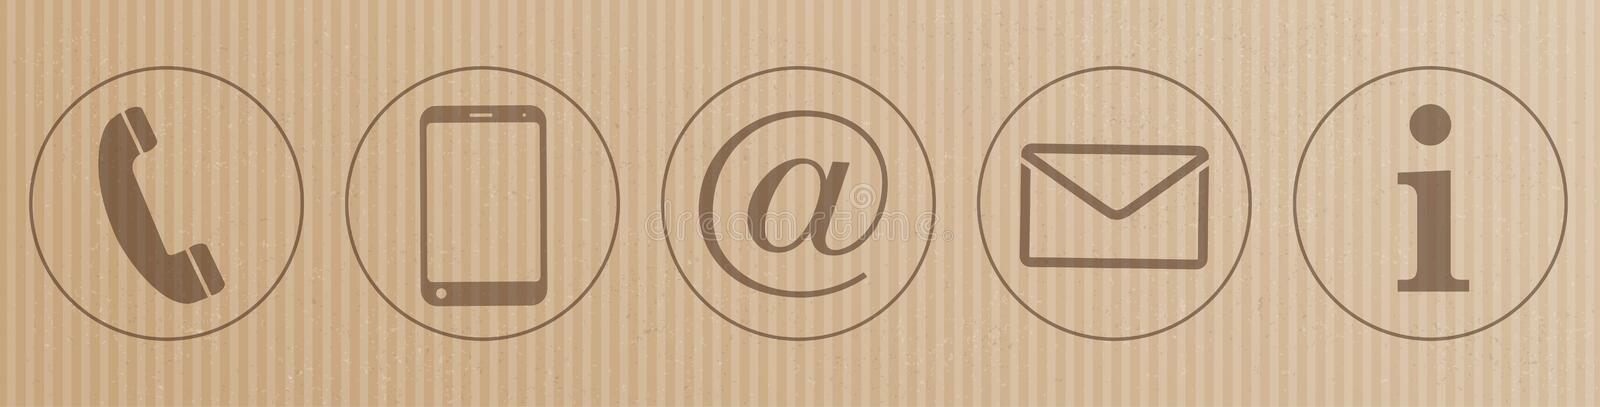 Cardboard Contact Icons Header. Brown and striped cardboard header with contact icons vector illustration